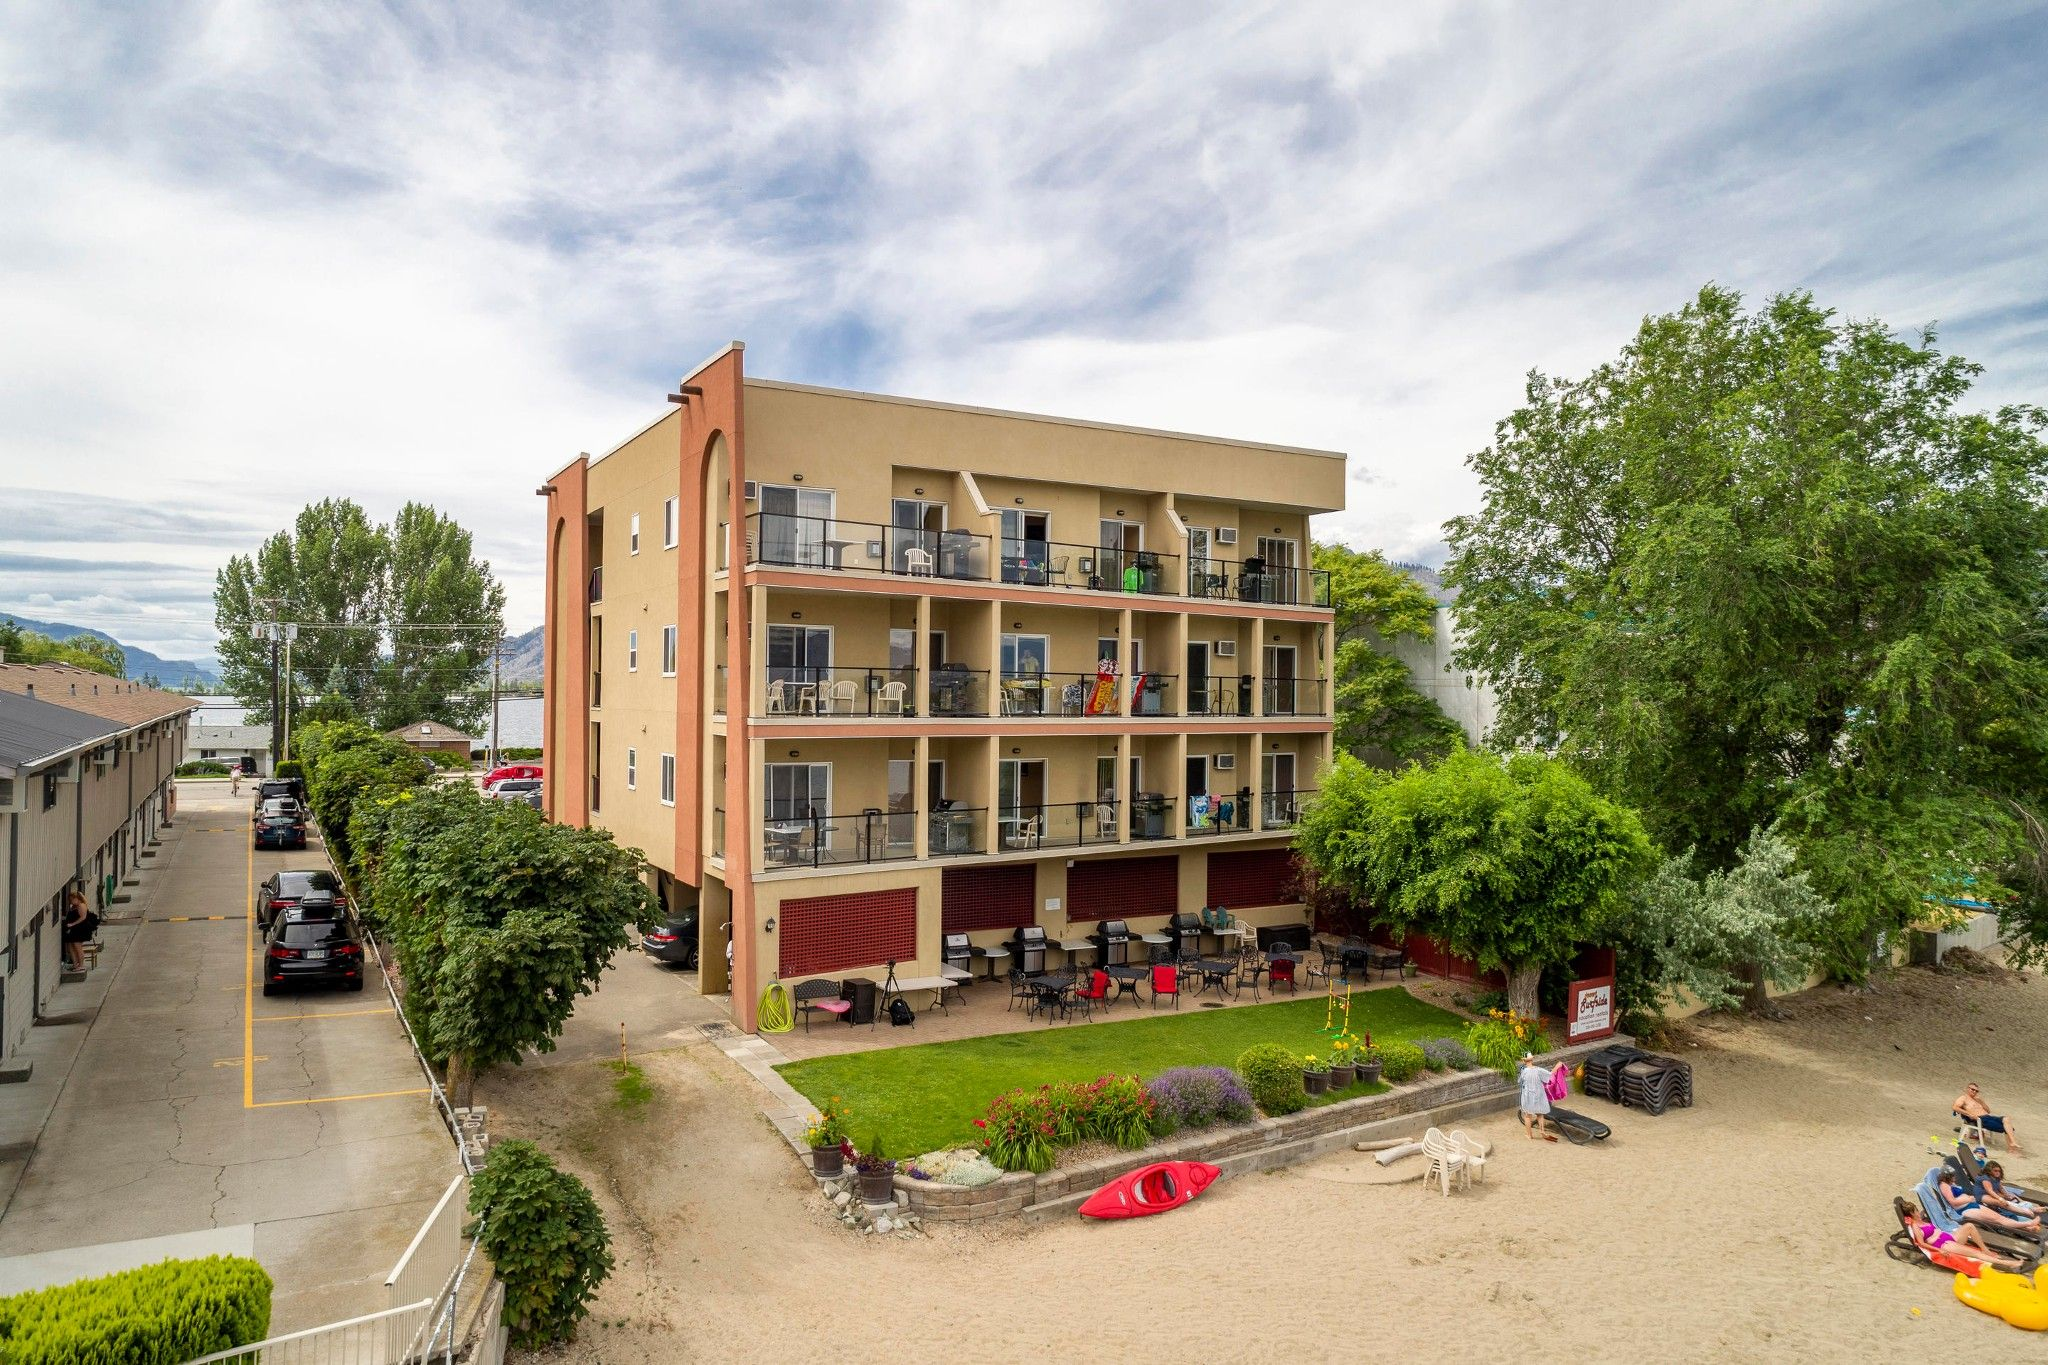 Main Photo: 211 7310 Main Street in Osoyoos: Condo for sale : MLS®# 179655